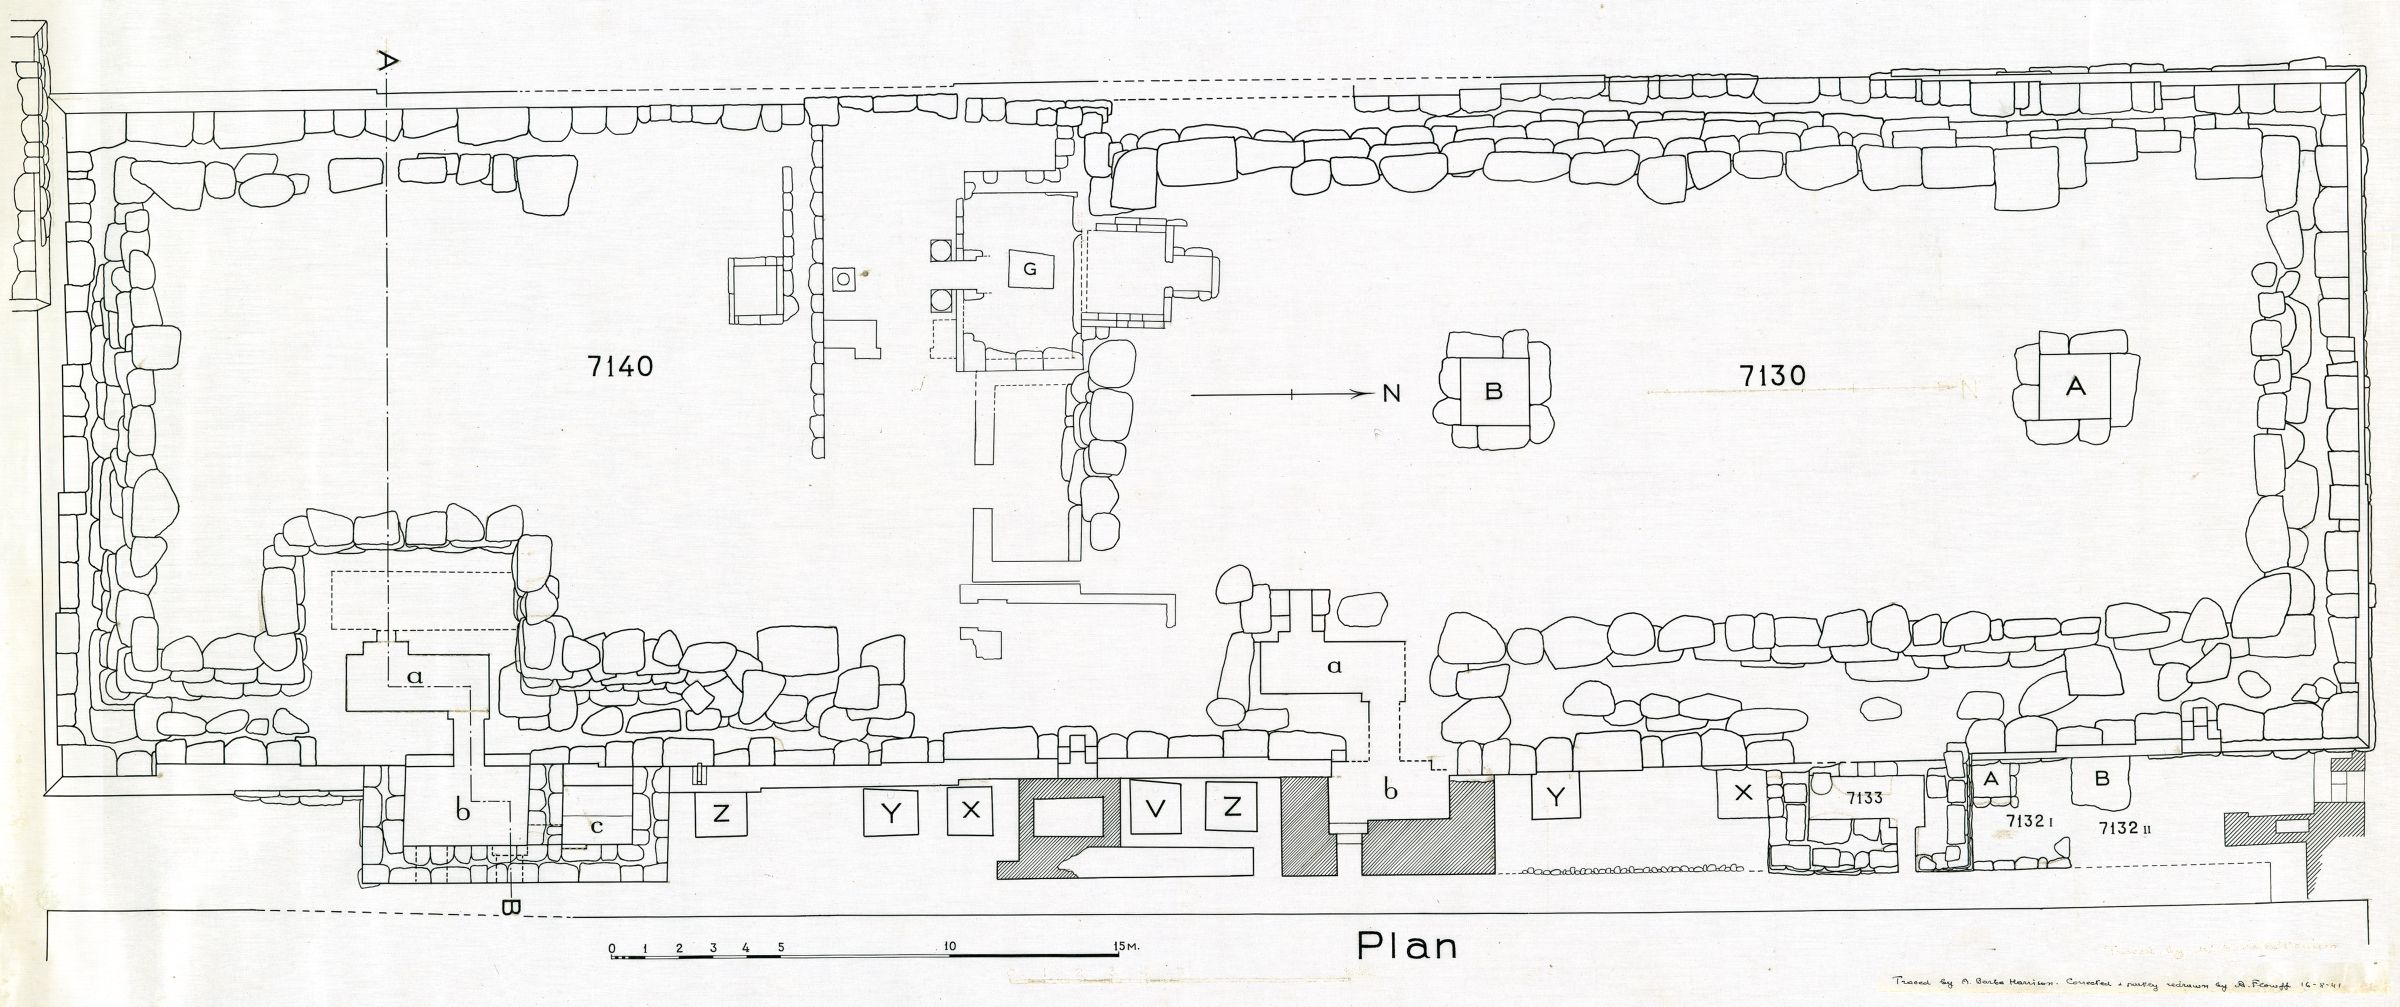 Maps and plans: Plan of G 7130-7140